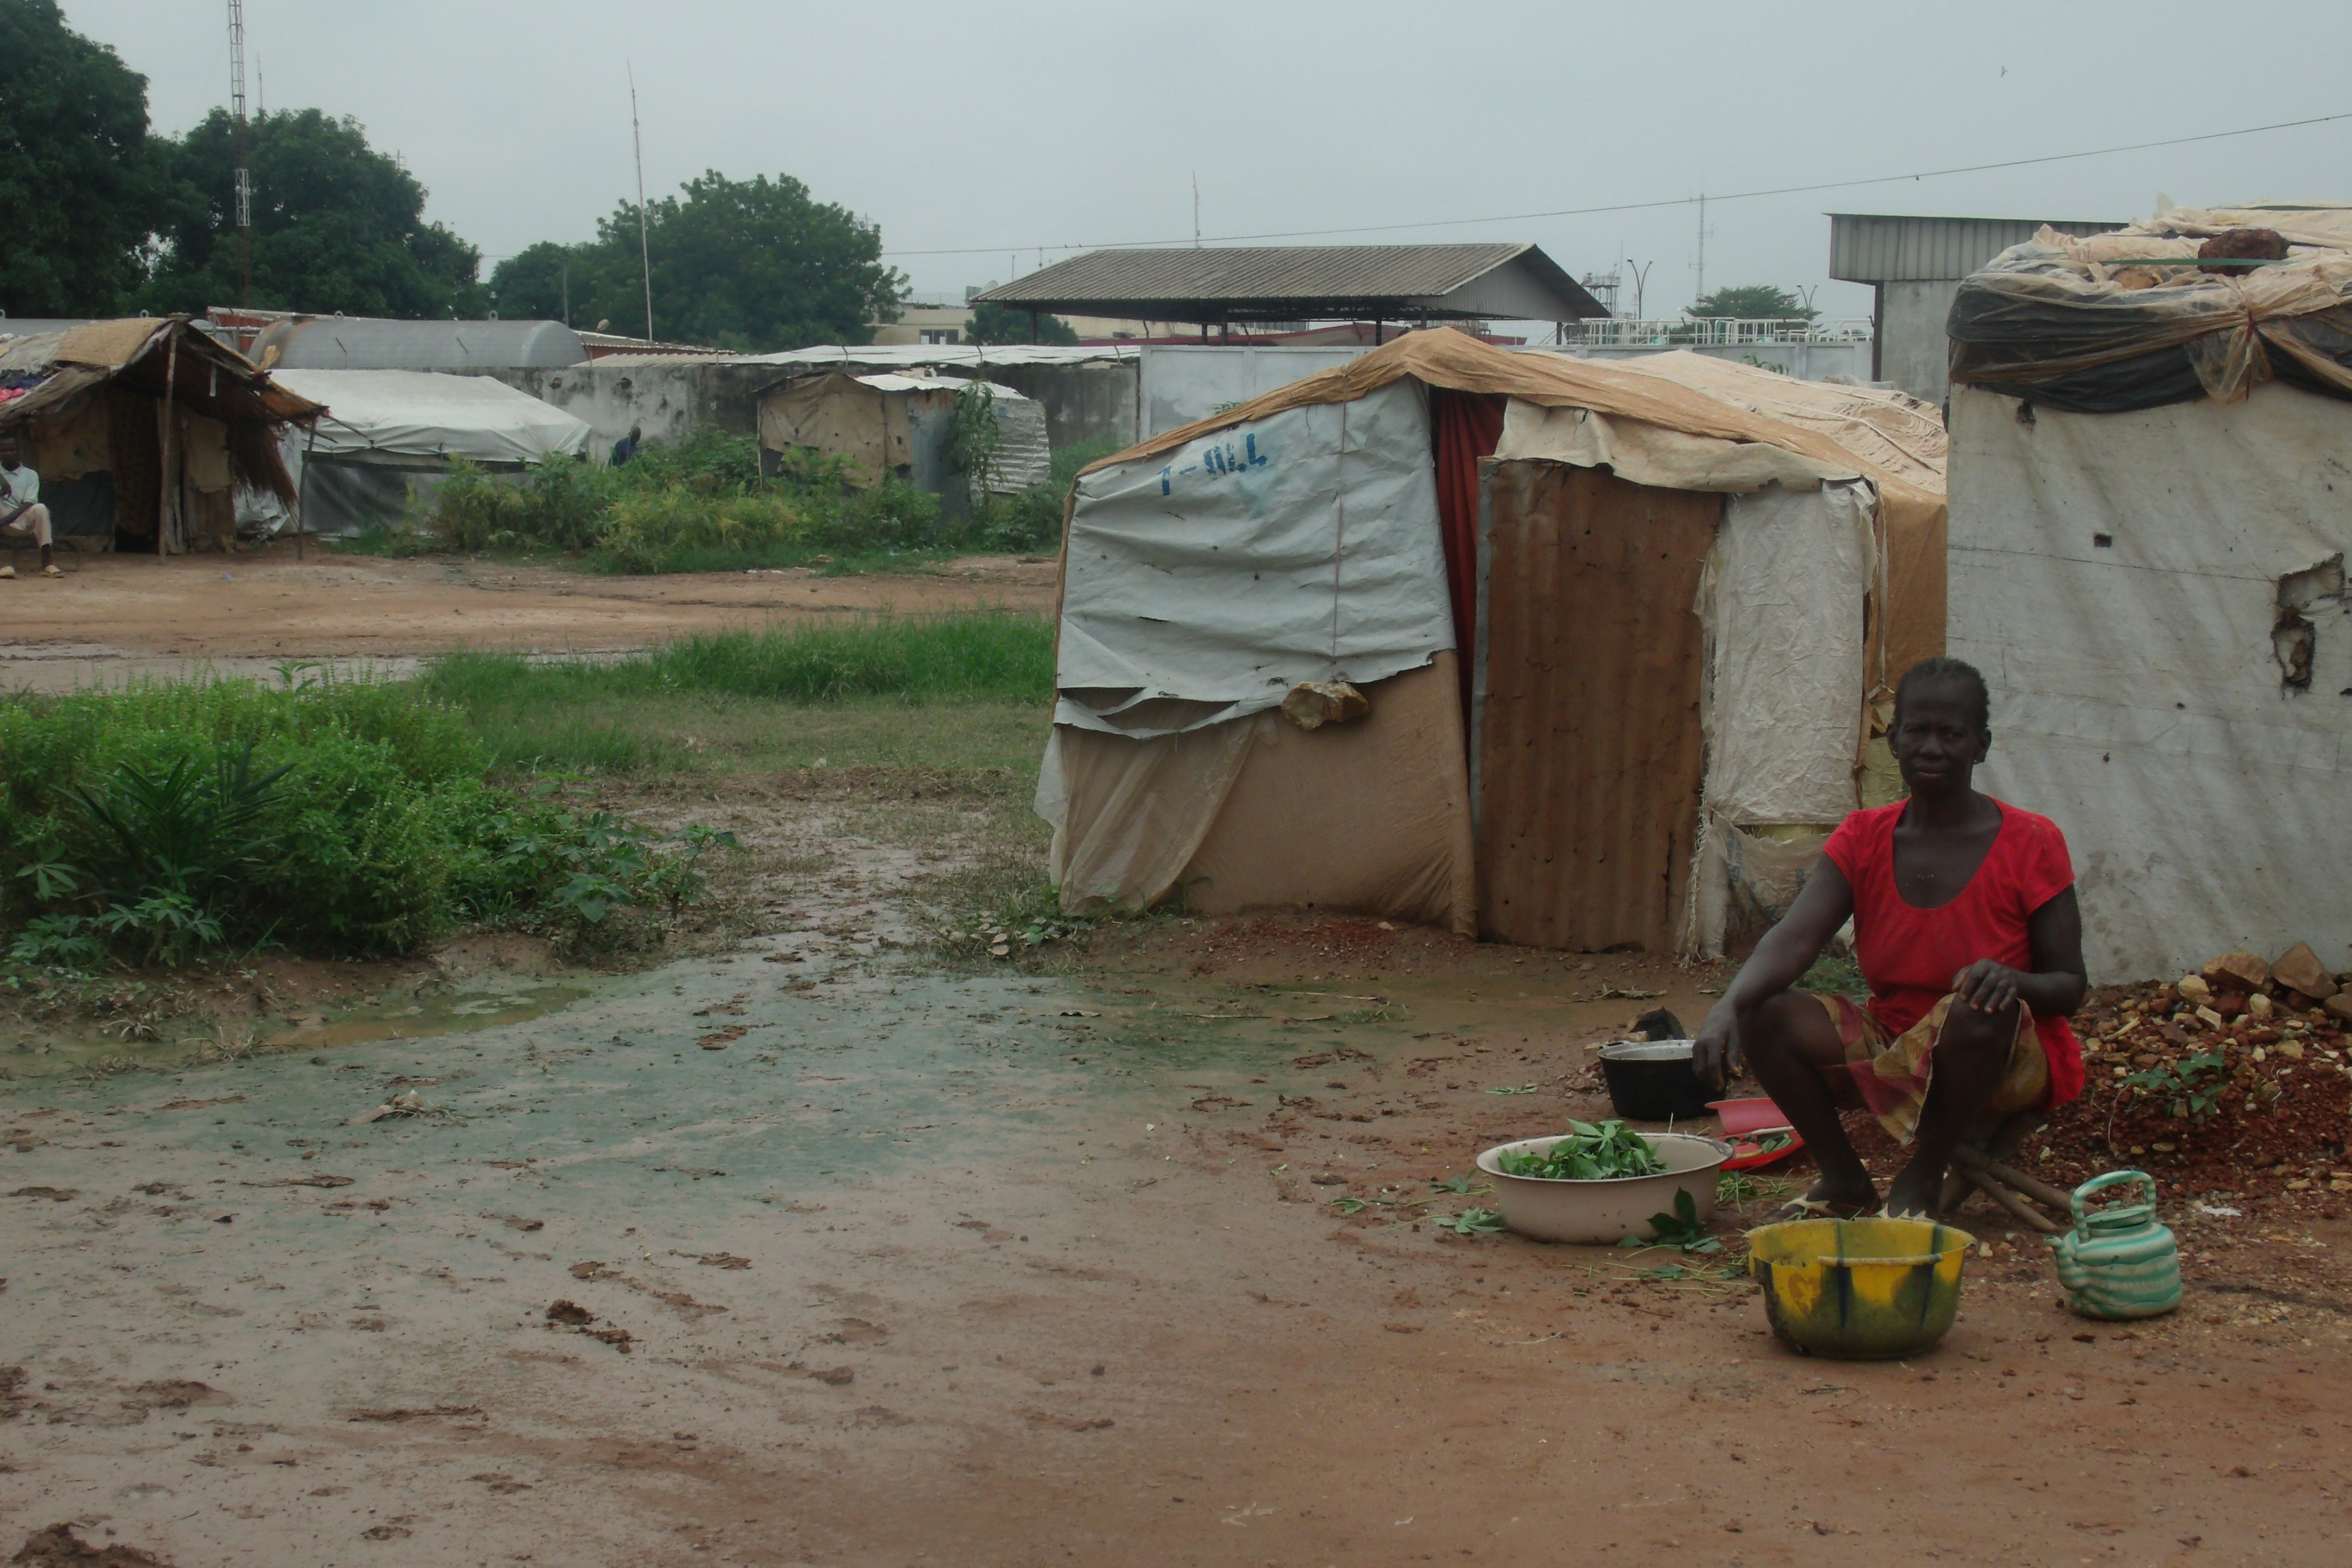 Christian refugees face new fears in unstable Central African Republic